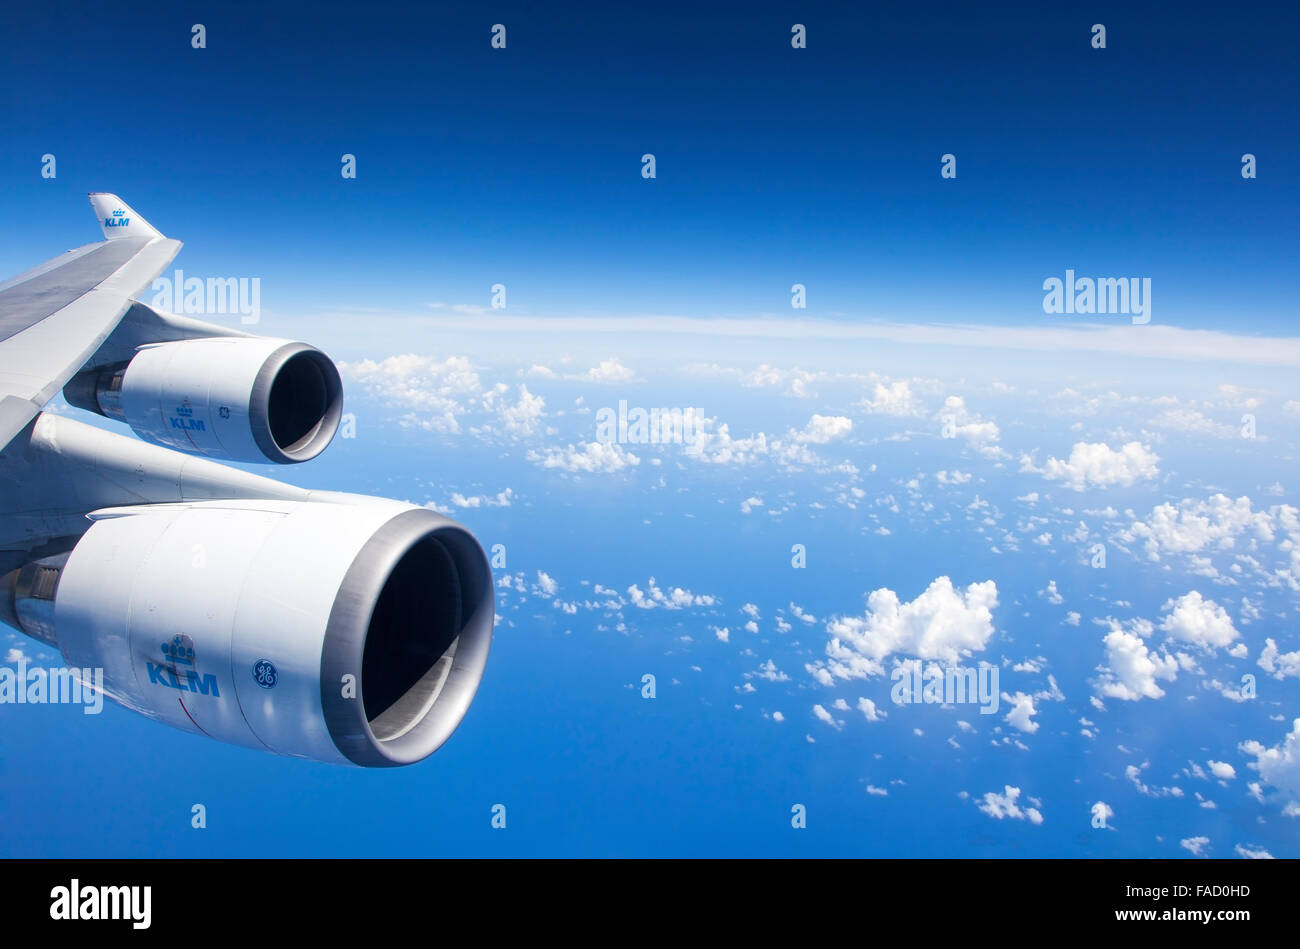 An Airplane Wing an engines During a Flight - Stock Image